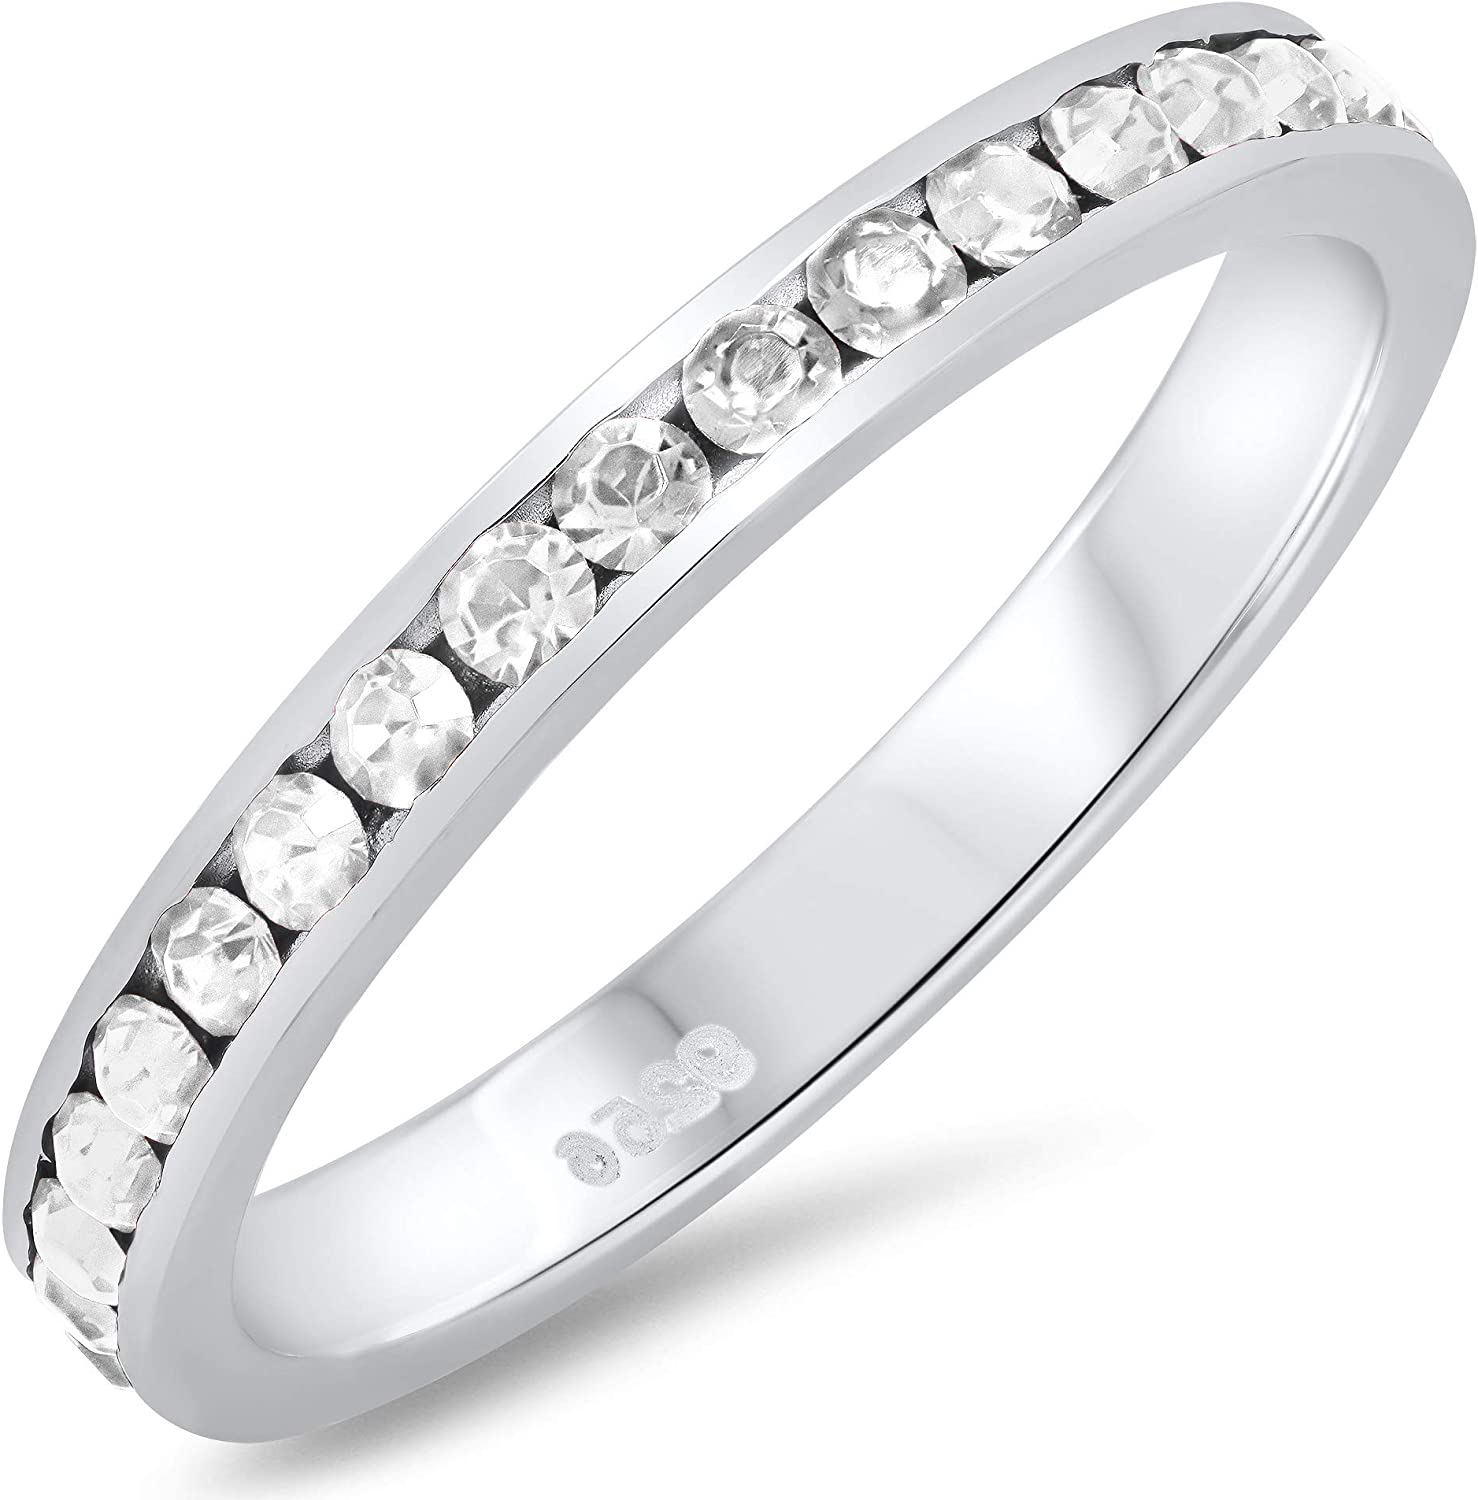 3mm Solid OFFicial Max 74% OFF shop .925 Sterling Silver Band Red Eternity Zirconia Cubic